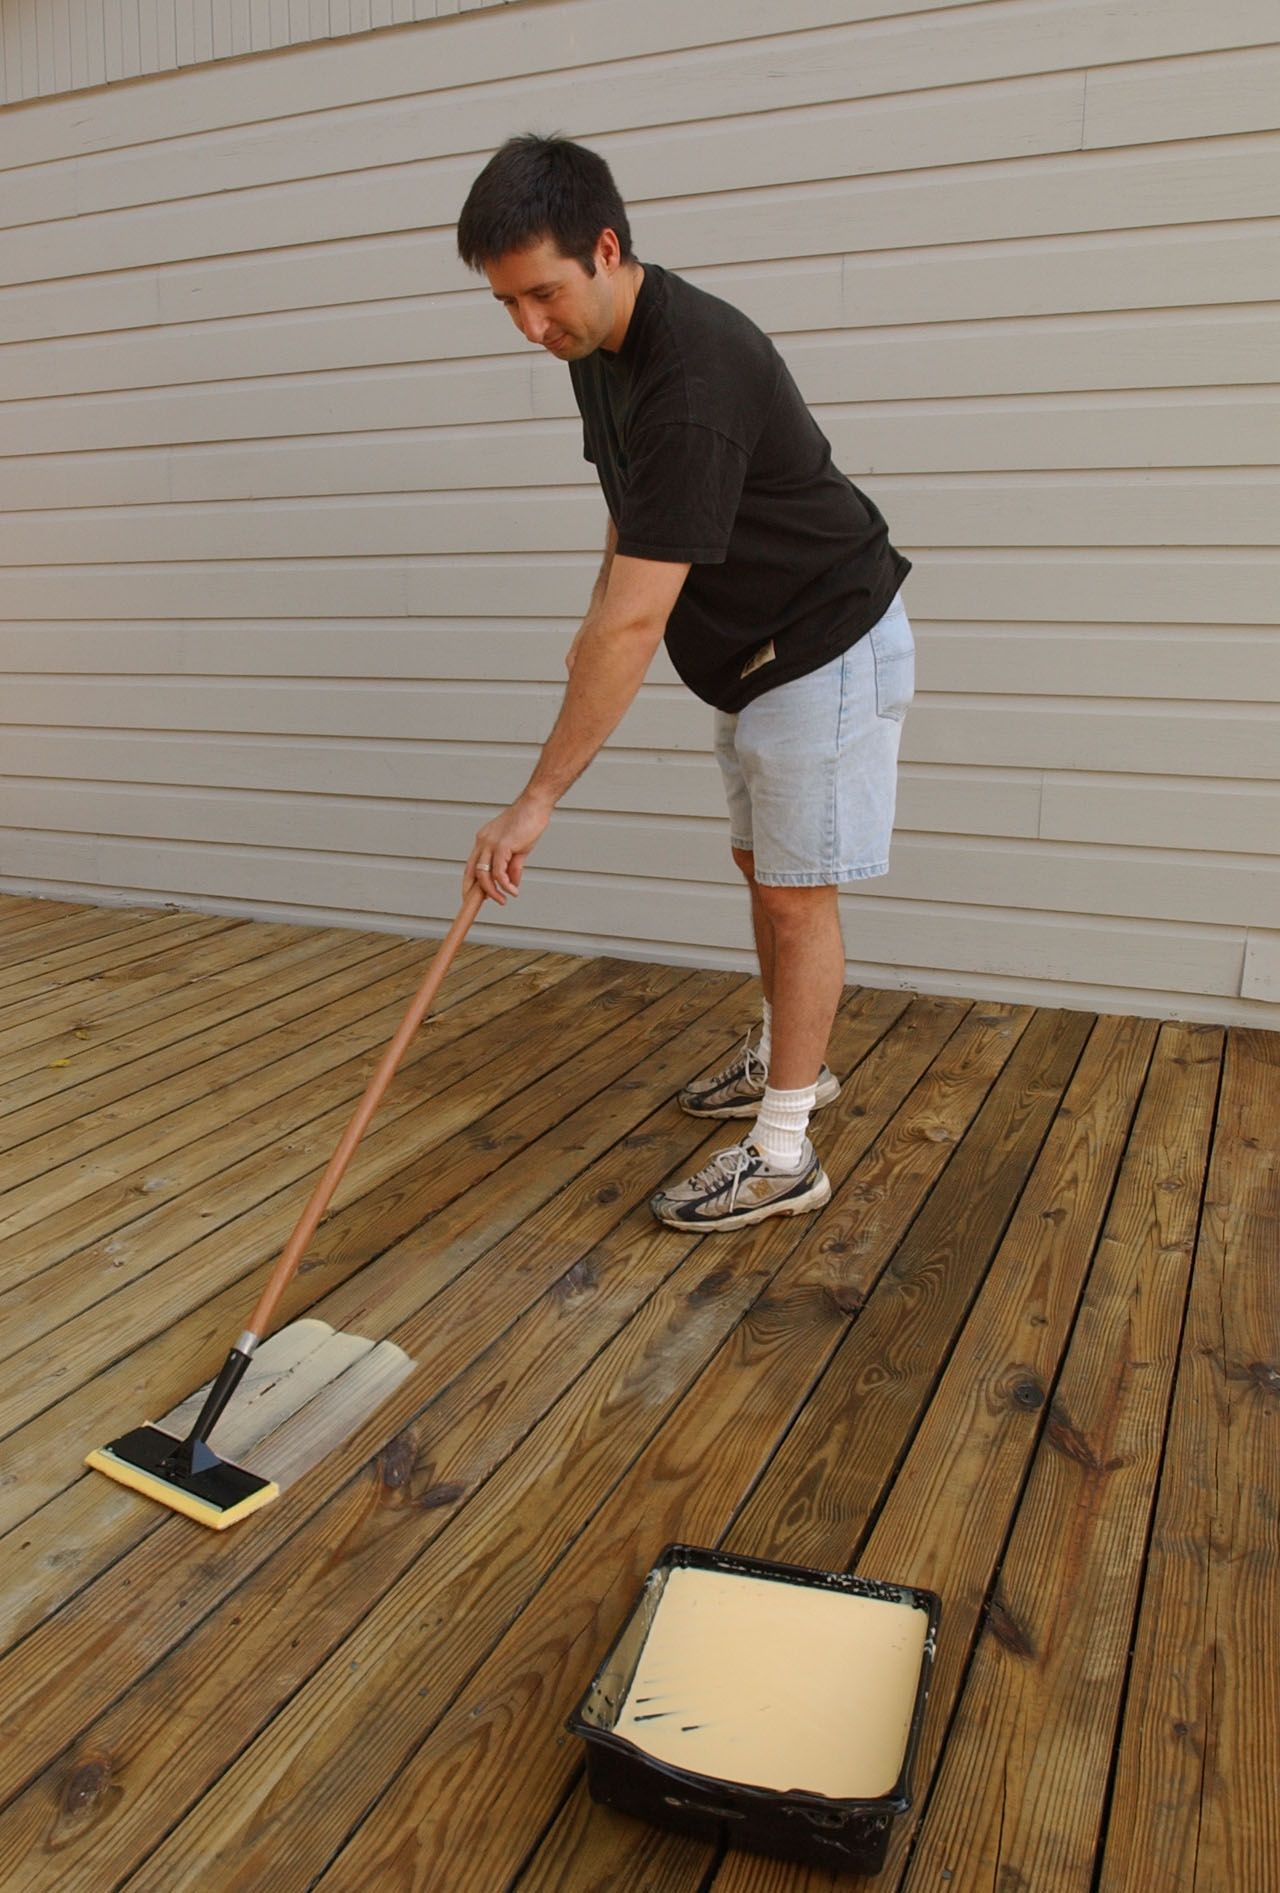 A Paint Pad Is A Great Tool For Applying Thompson S Water Seal Waterproofers Whether It S A Clear Or Tinted Wood Prot Staining Deck Wood Deck Stain Deck Paint